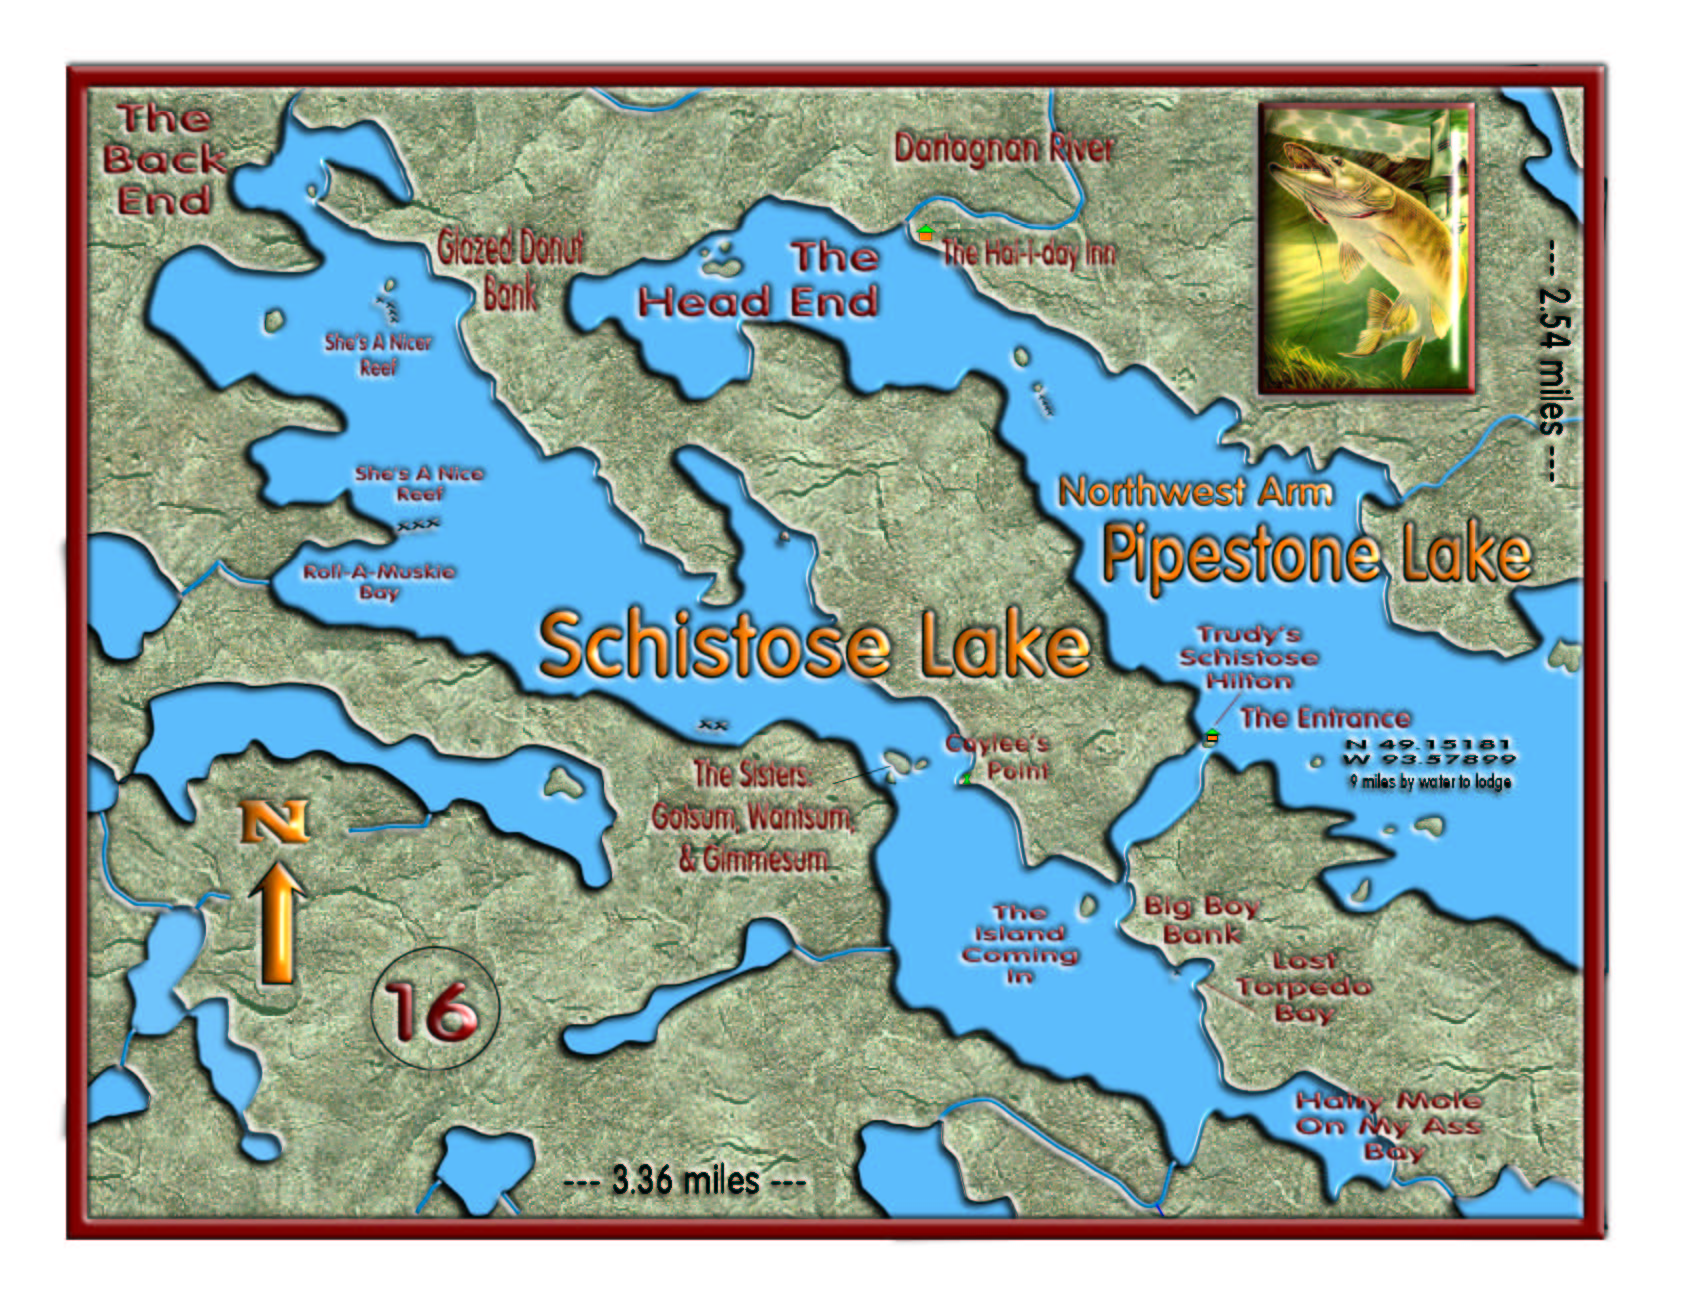 Schistose Lake/The Head End map